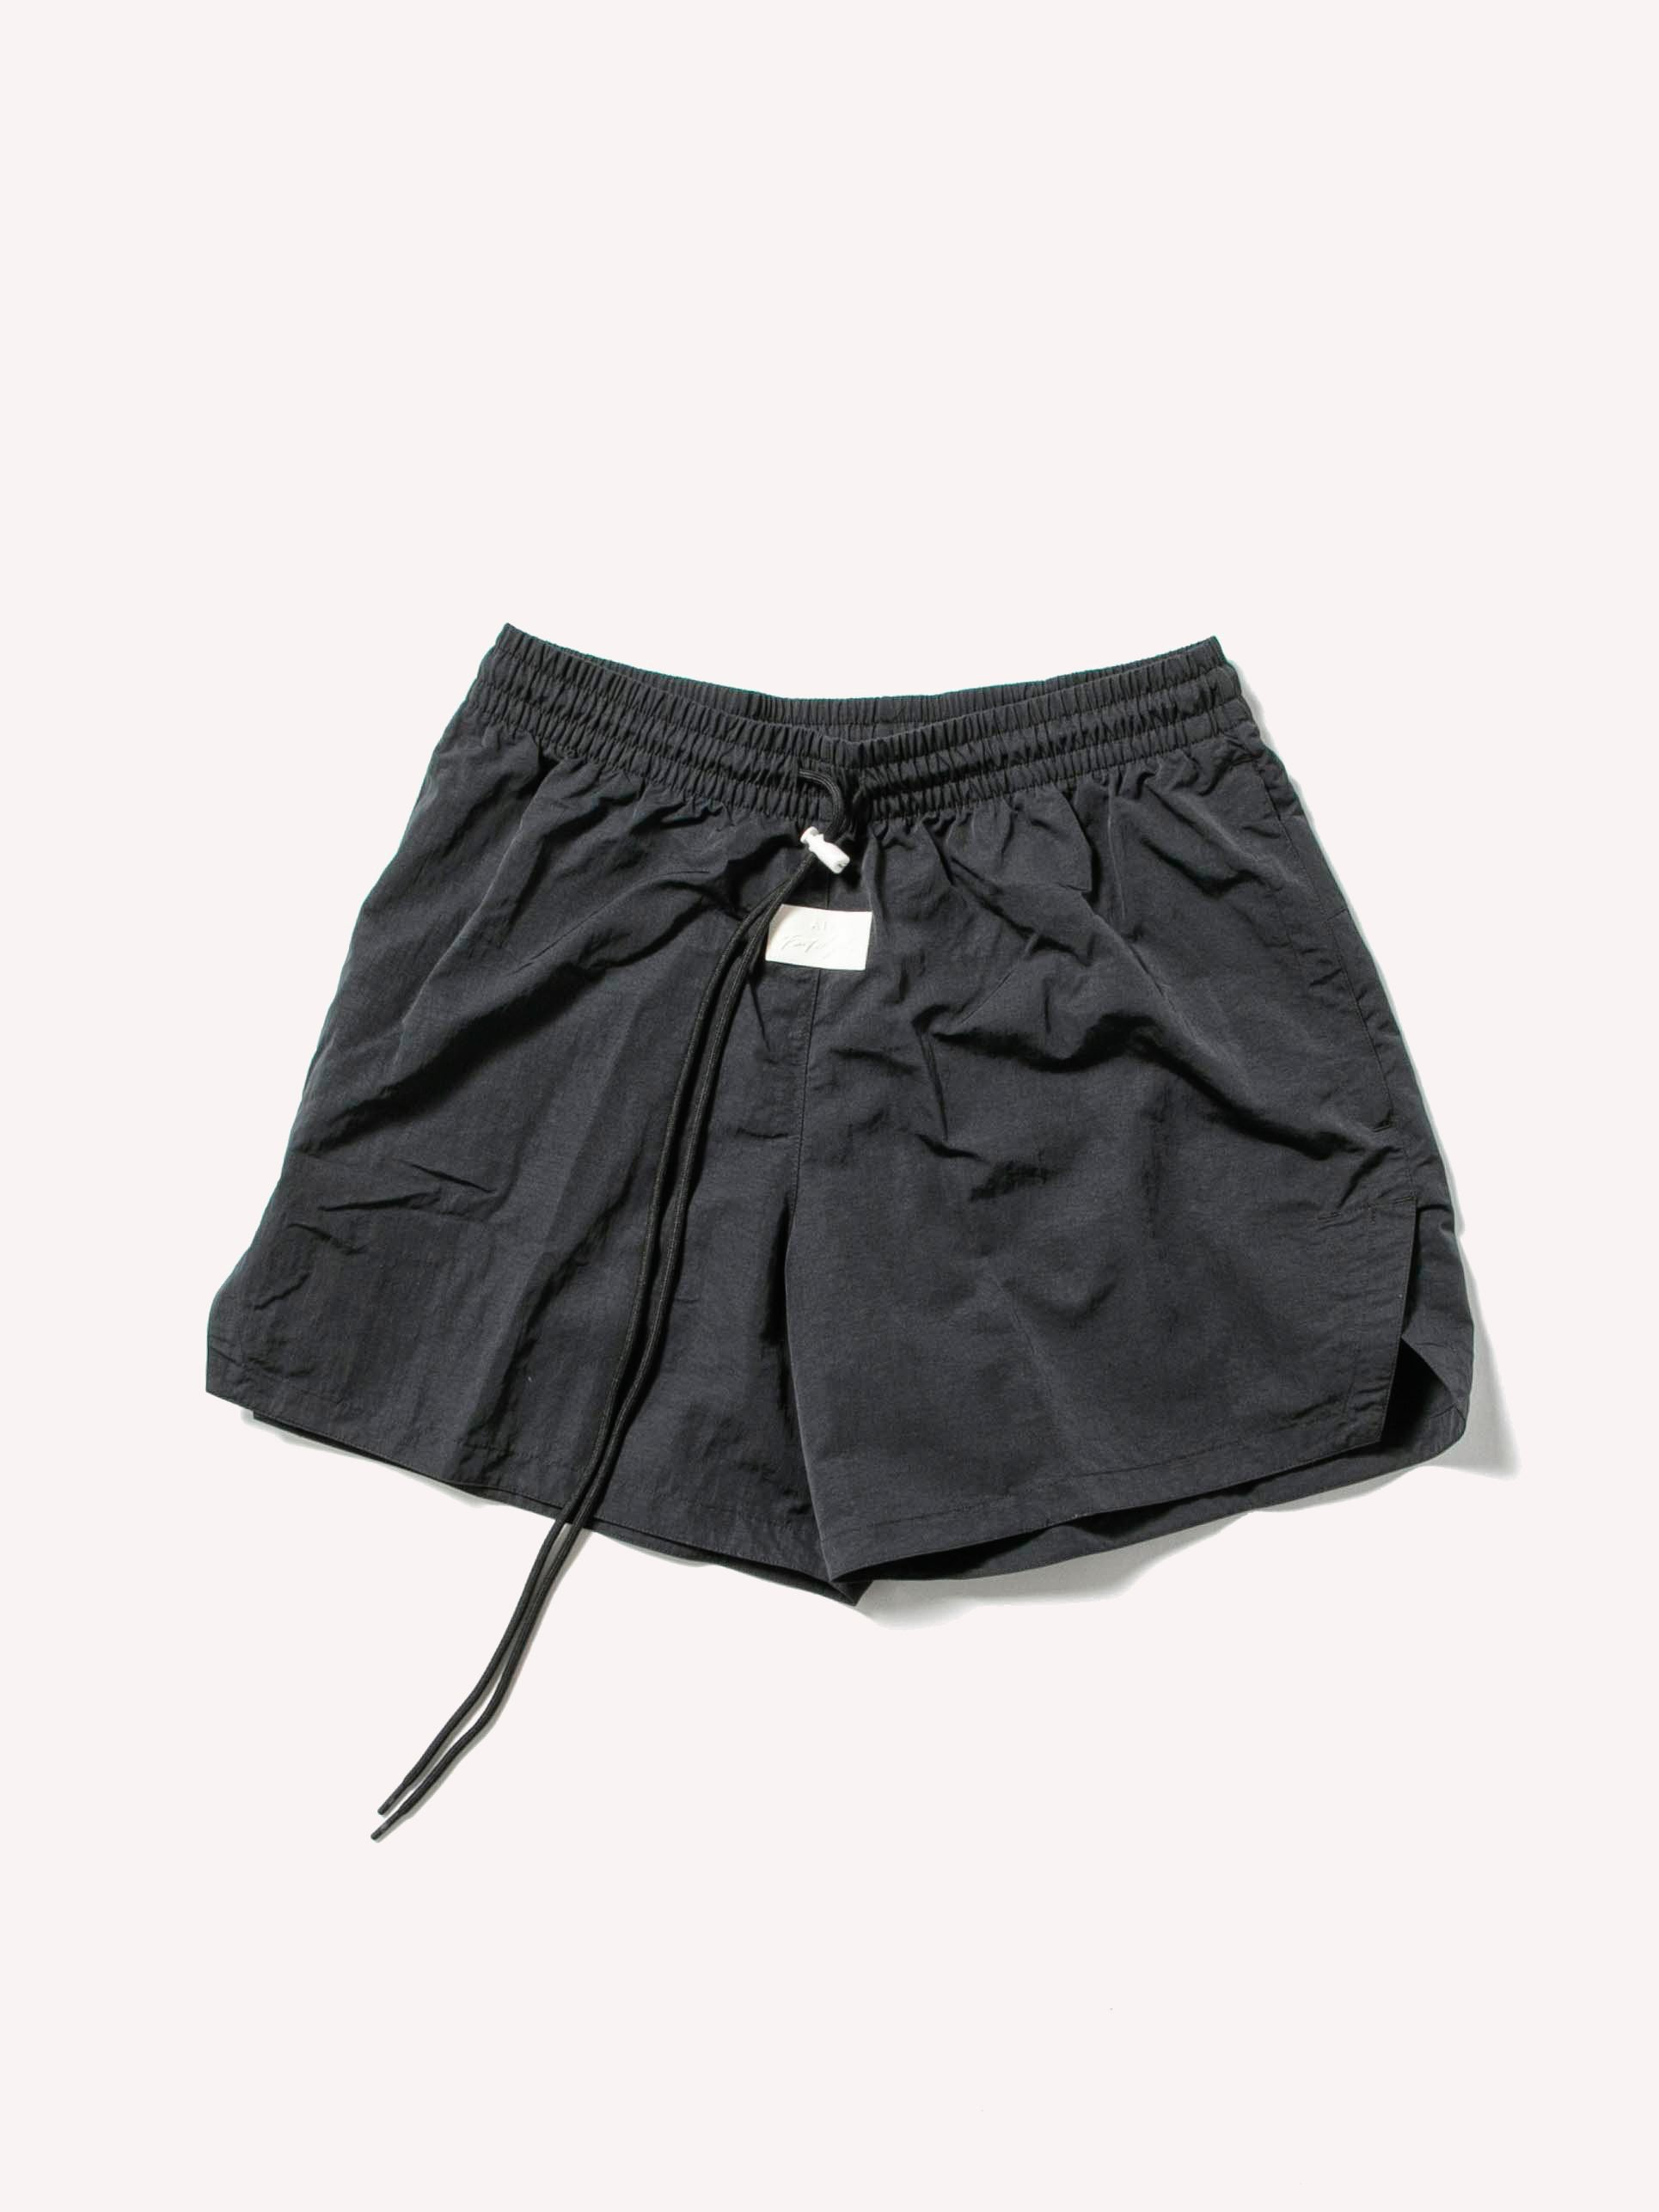 Nike x Fear Of God Tie Short